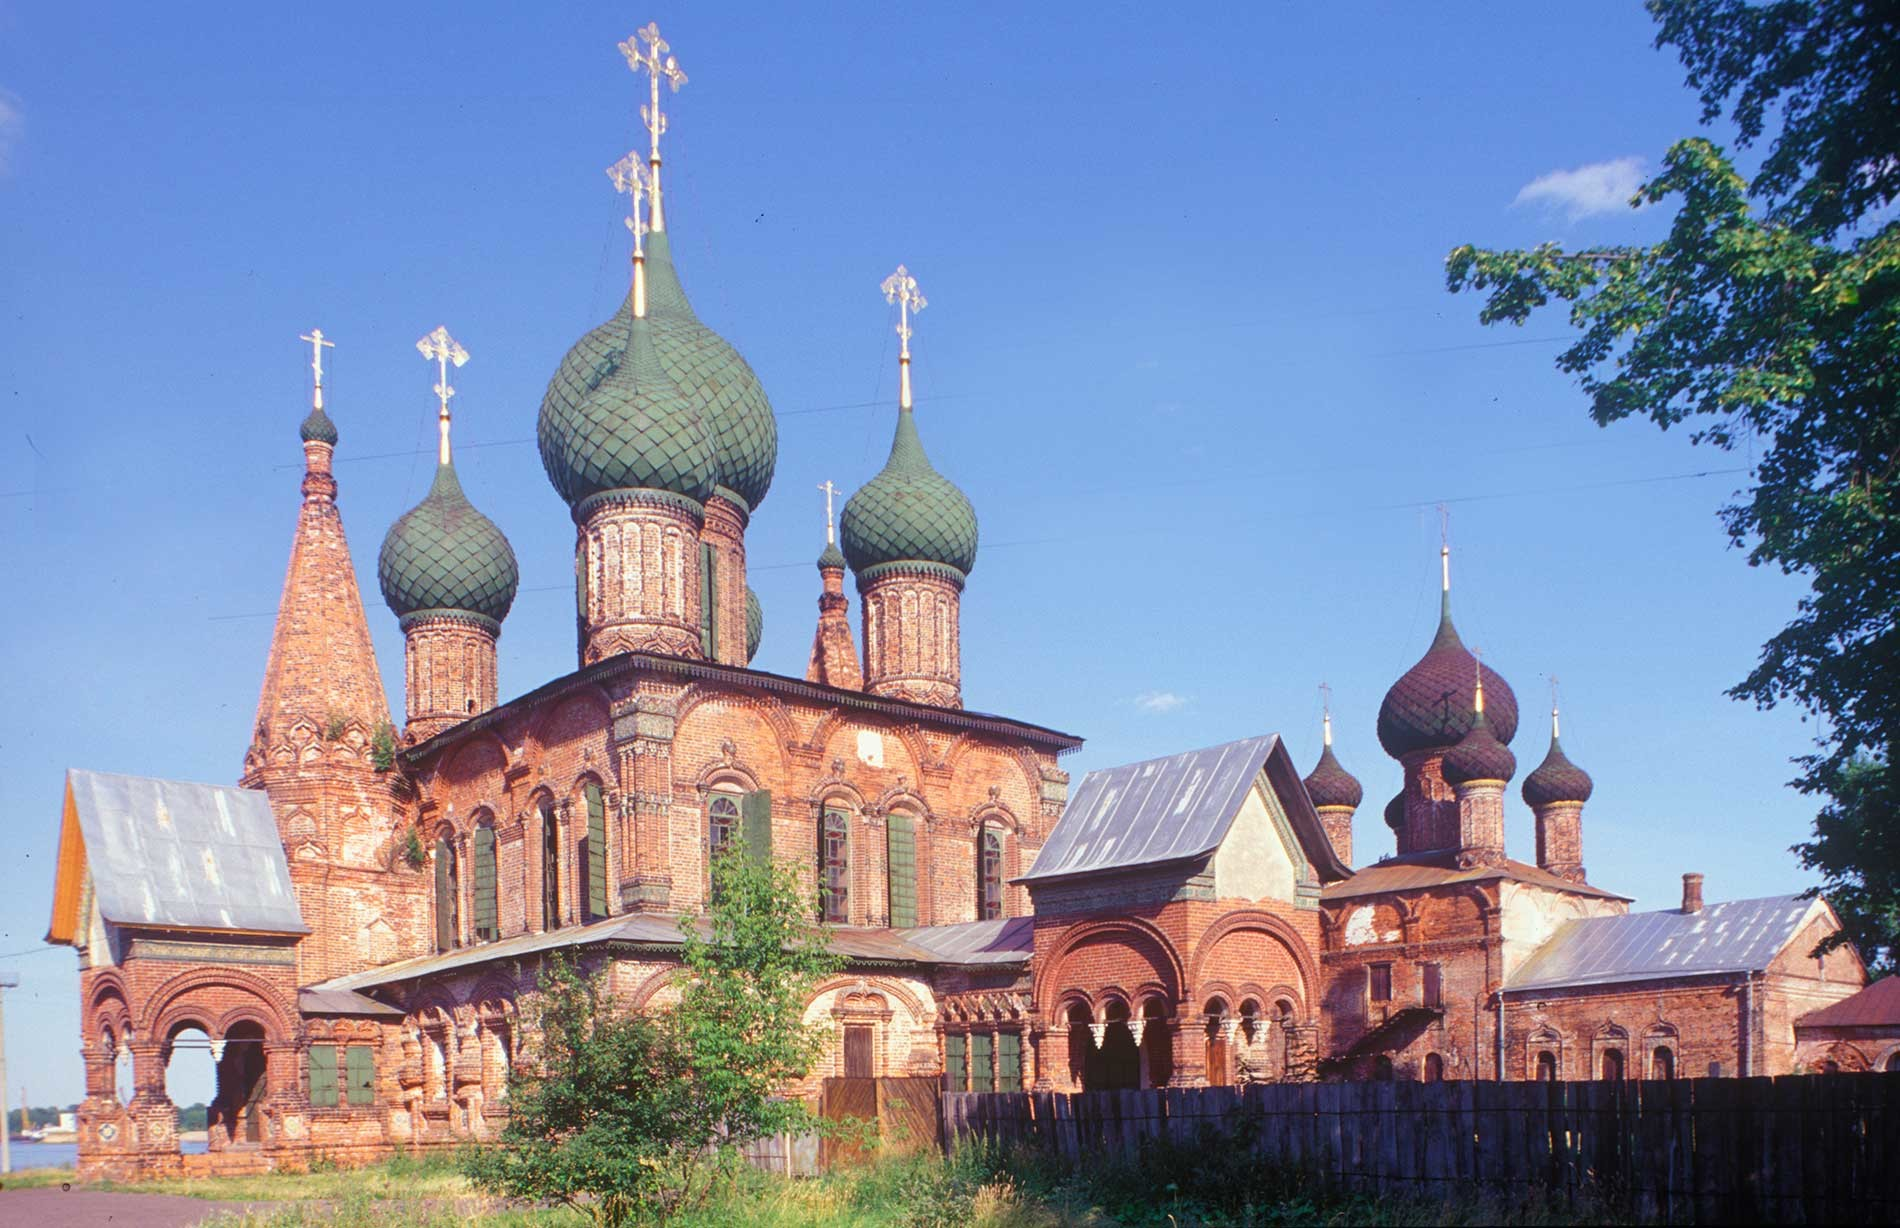 Yaroslavl. Korovniki ensemble: Church of St. John Chrysostome (left), Church of the Vladimir Icon. Northwest view. July 24, 1997.